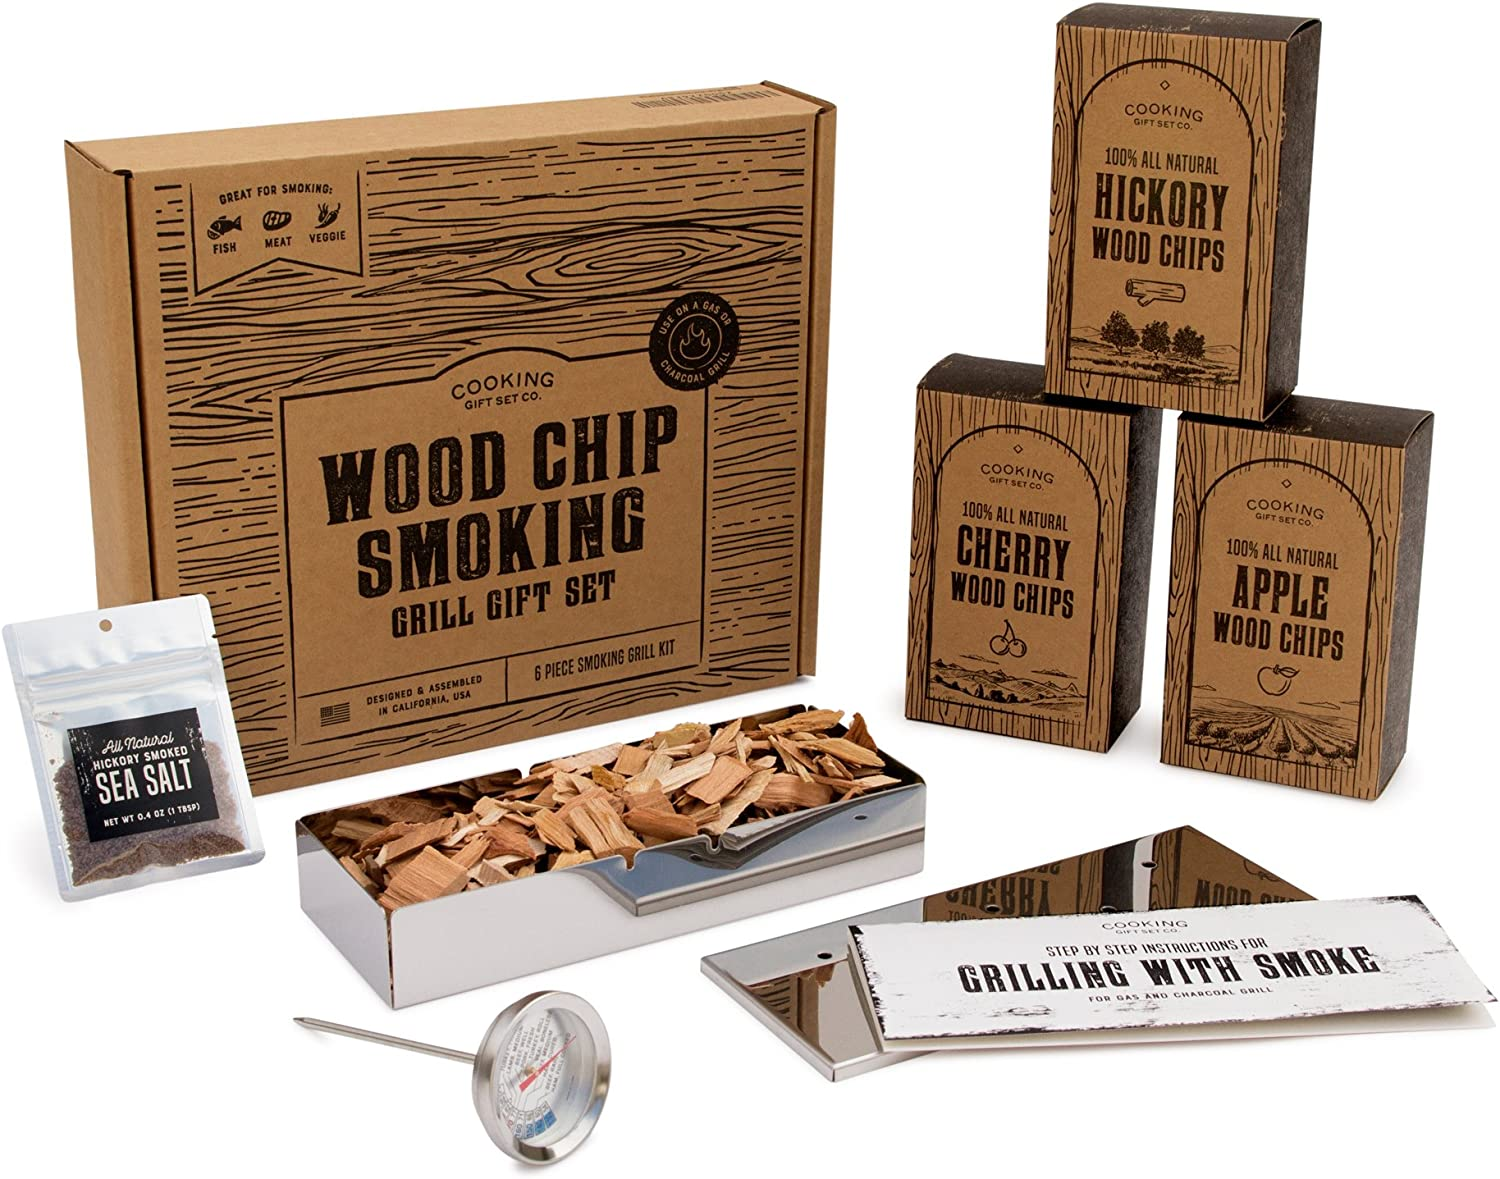 Cooking Gift Set Wood Chips for Smoking and Grilling Box Set 6 PC BBQ Accessories Perfect for Birthday Gifts for Men, Anniversary, Housewarming Gifts